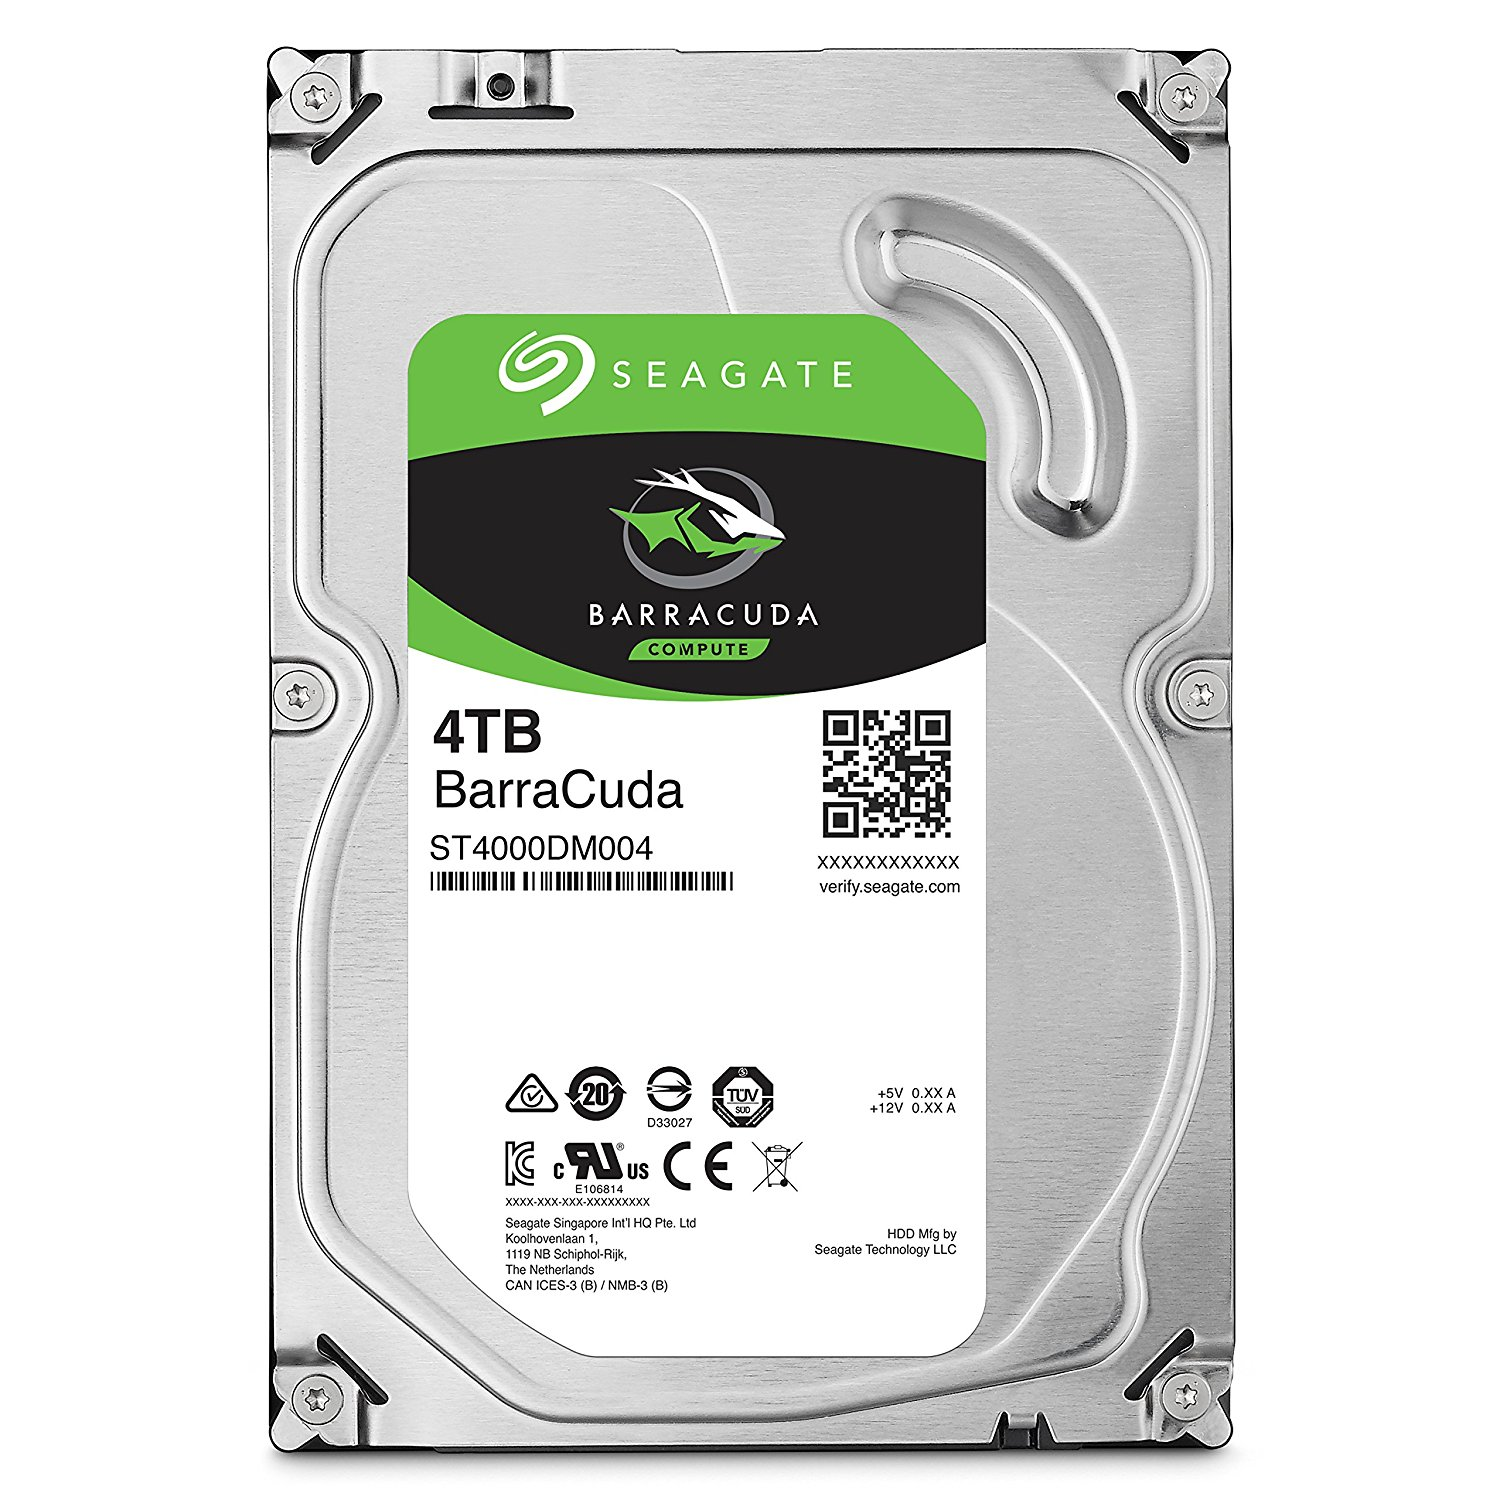 4TB Int BarraCuda SATA 3.5